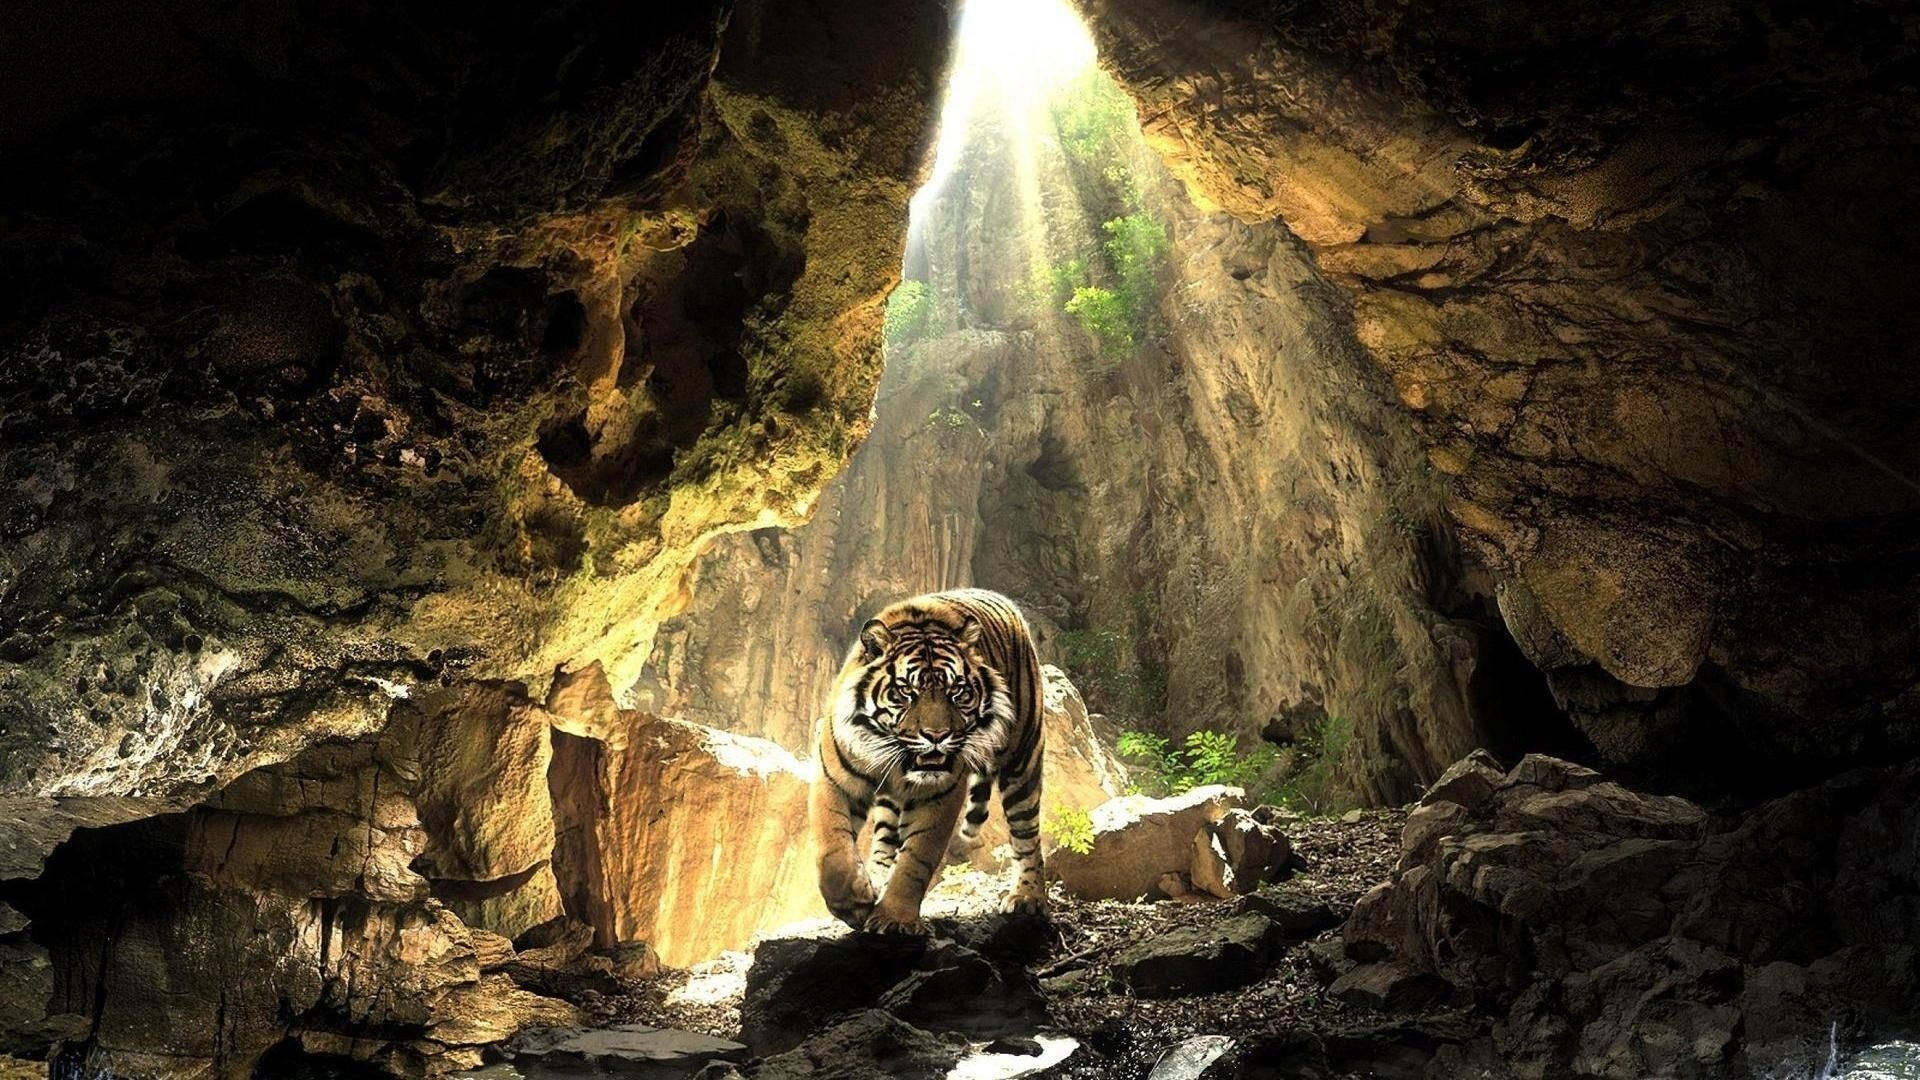 Tiger in the cave, HD Wallpaper